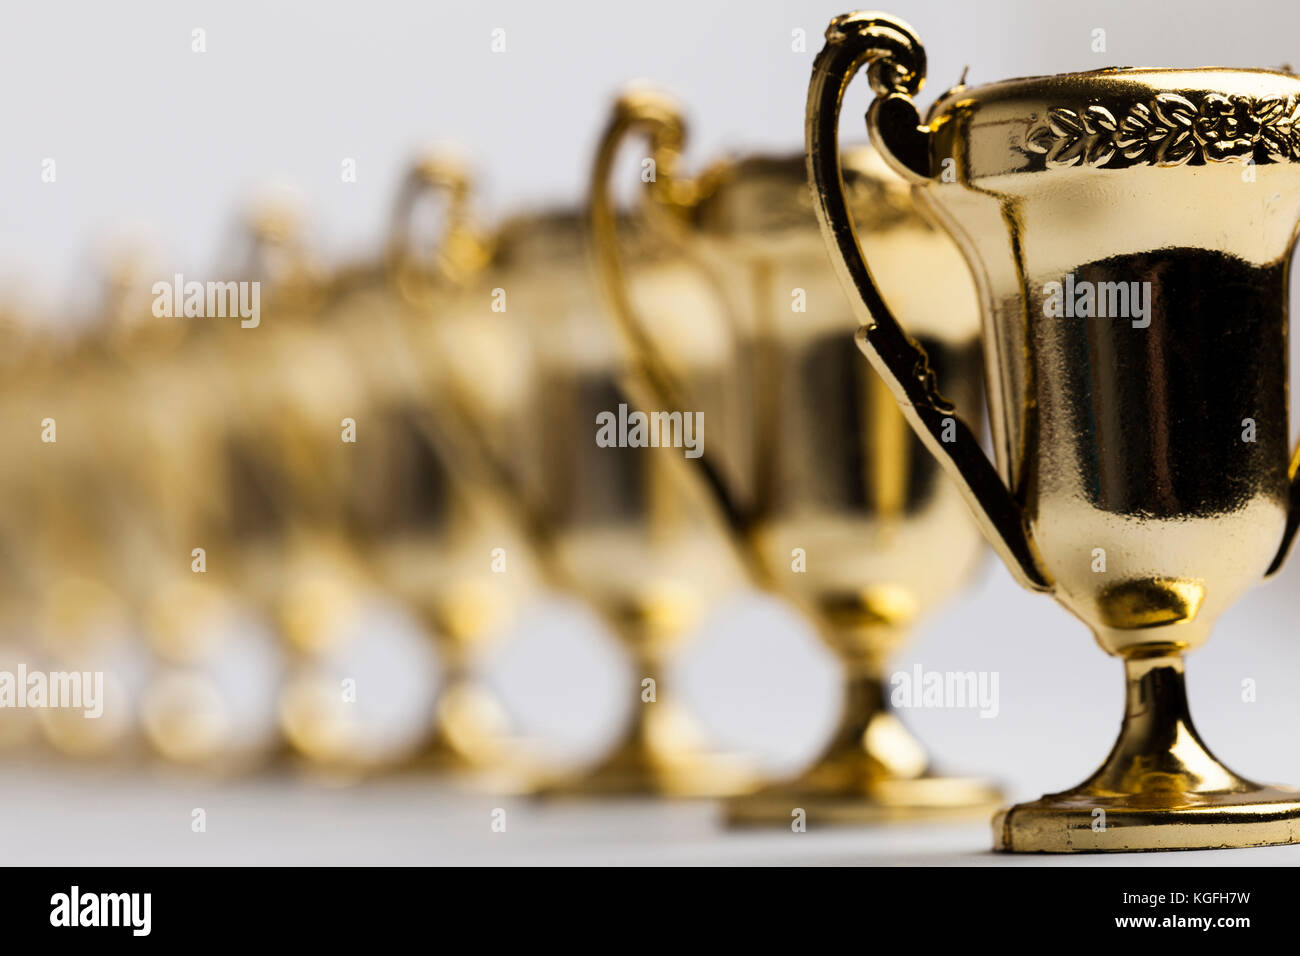 Gold winners achievement trophy background - Stock Image